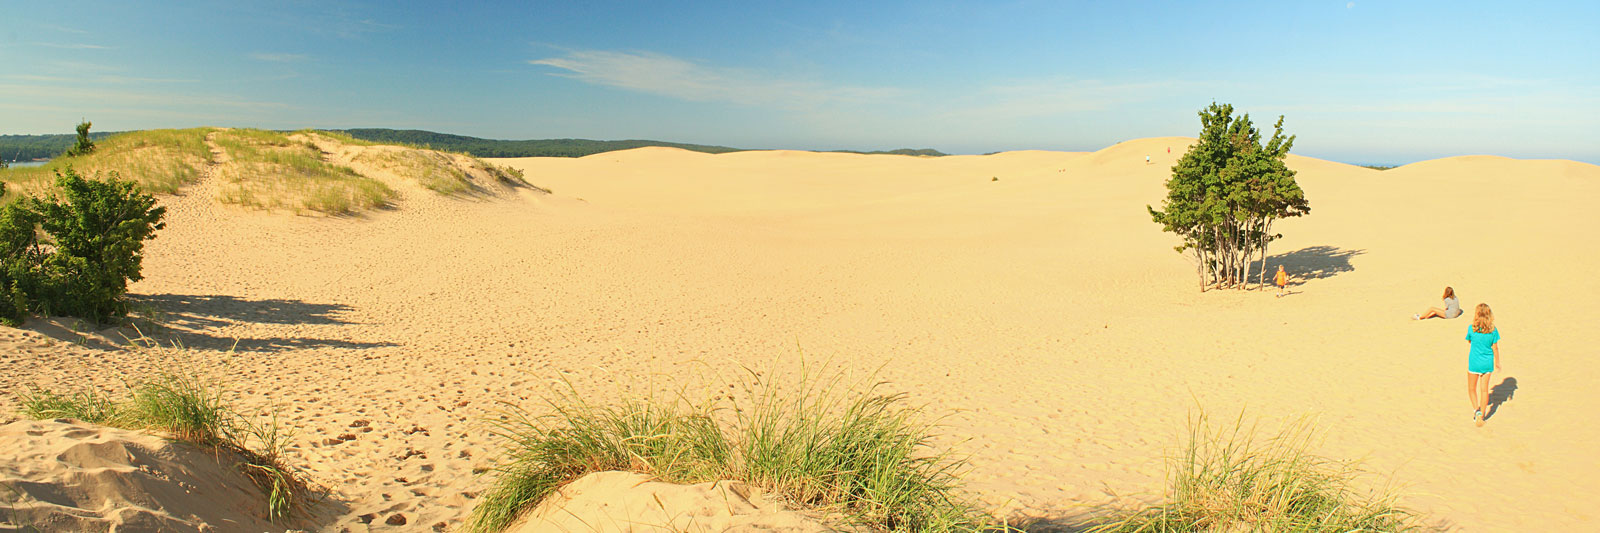 10-dune-view-silver-lake-state-park